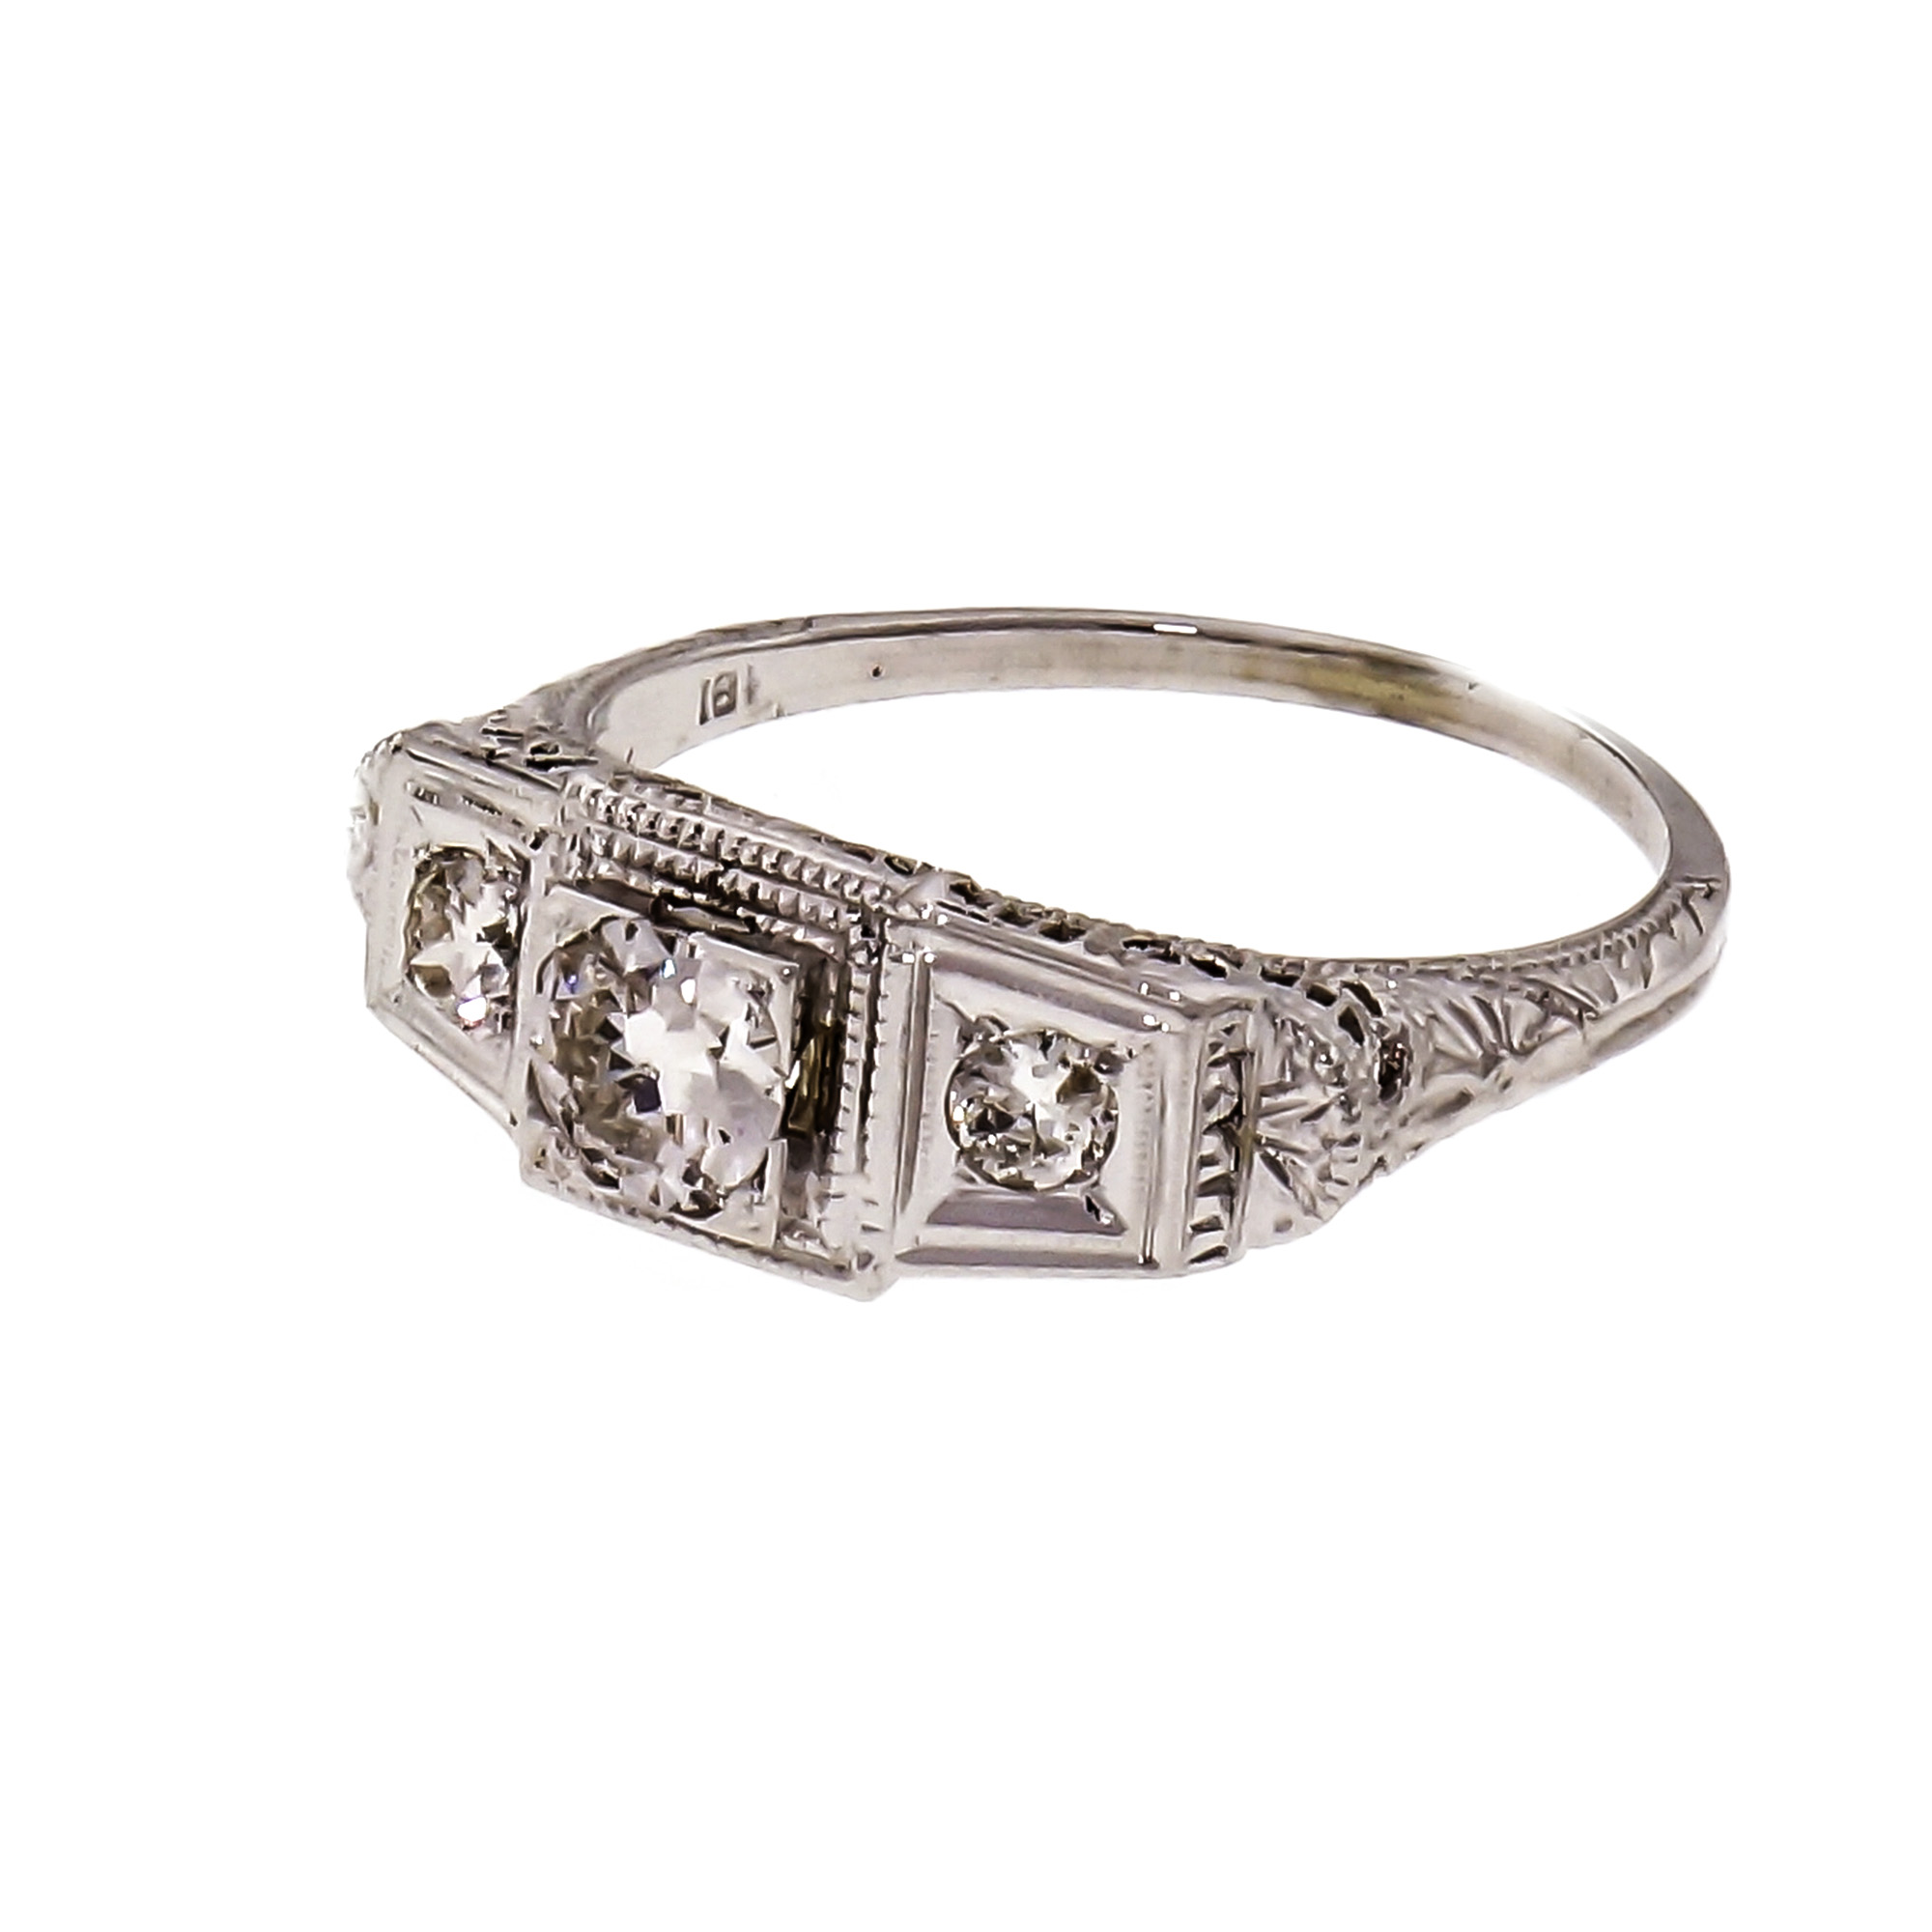 Vintage Art Deco Filigree Diamond Engagement Ring 18k